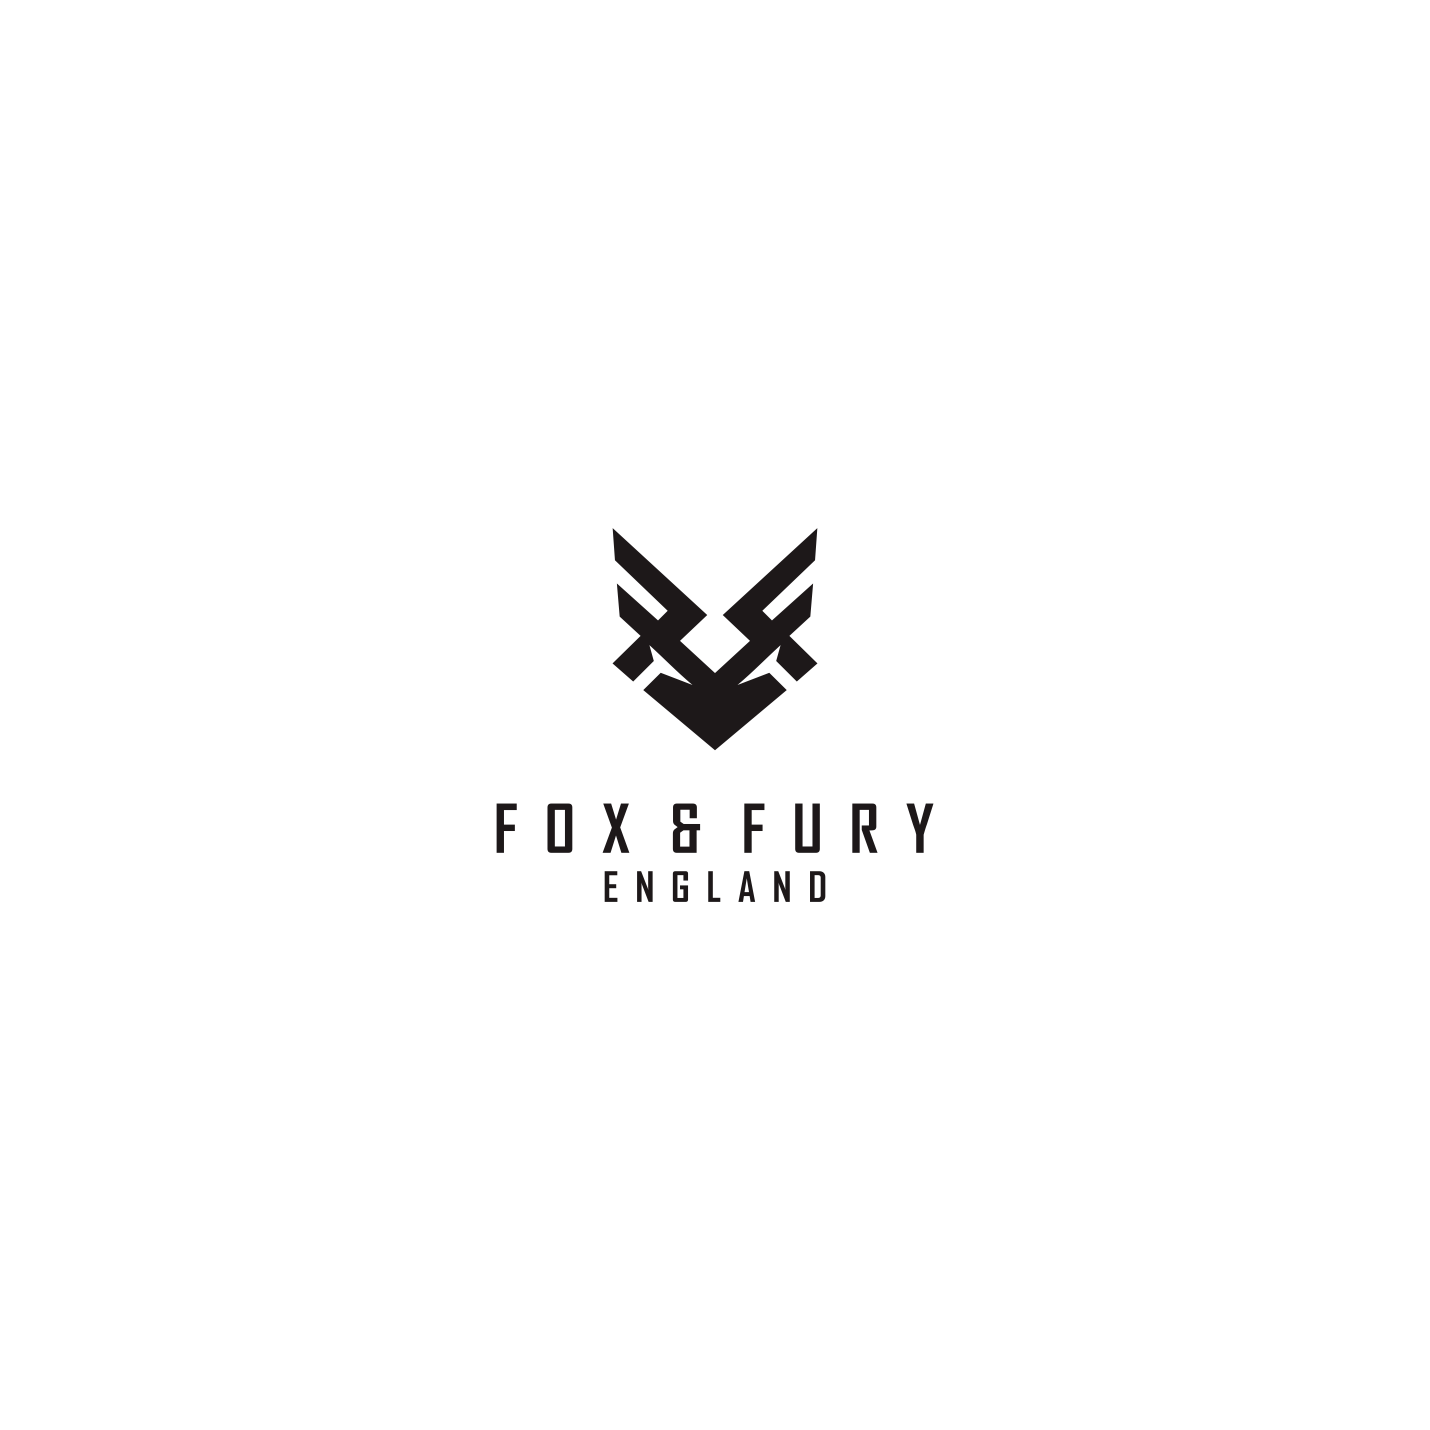 Create a premium country clothing brand logo!